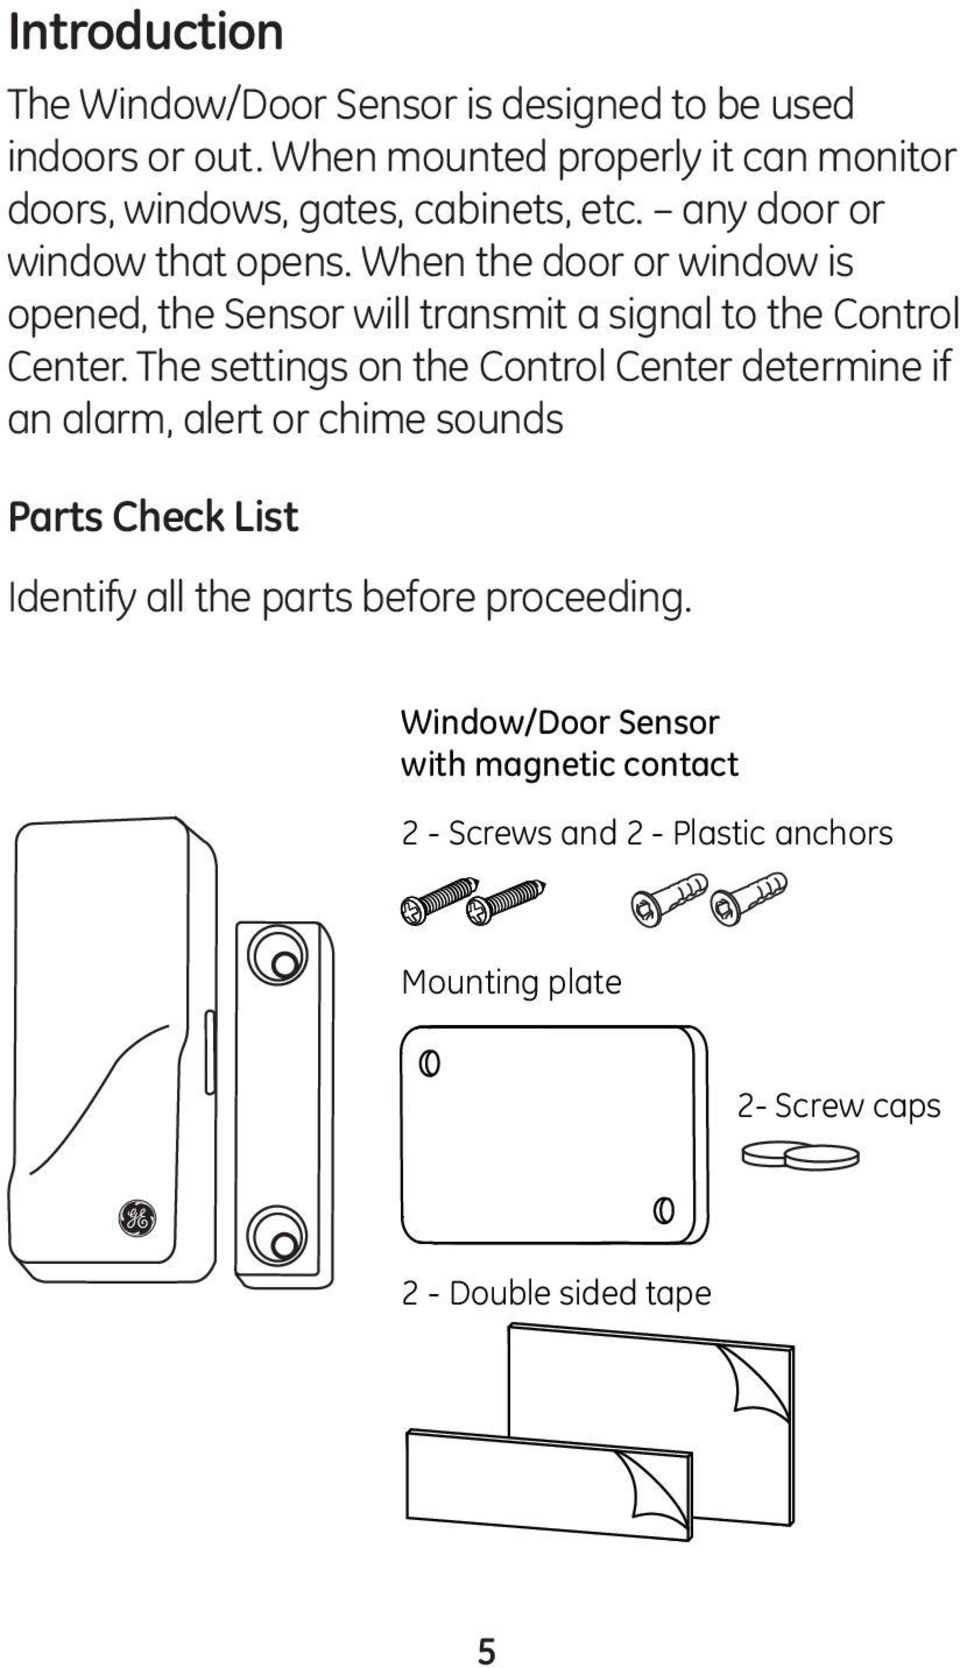 When the door or window is opened, the Sensor will transmit a signal to the Control Center.